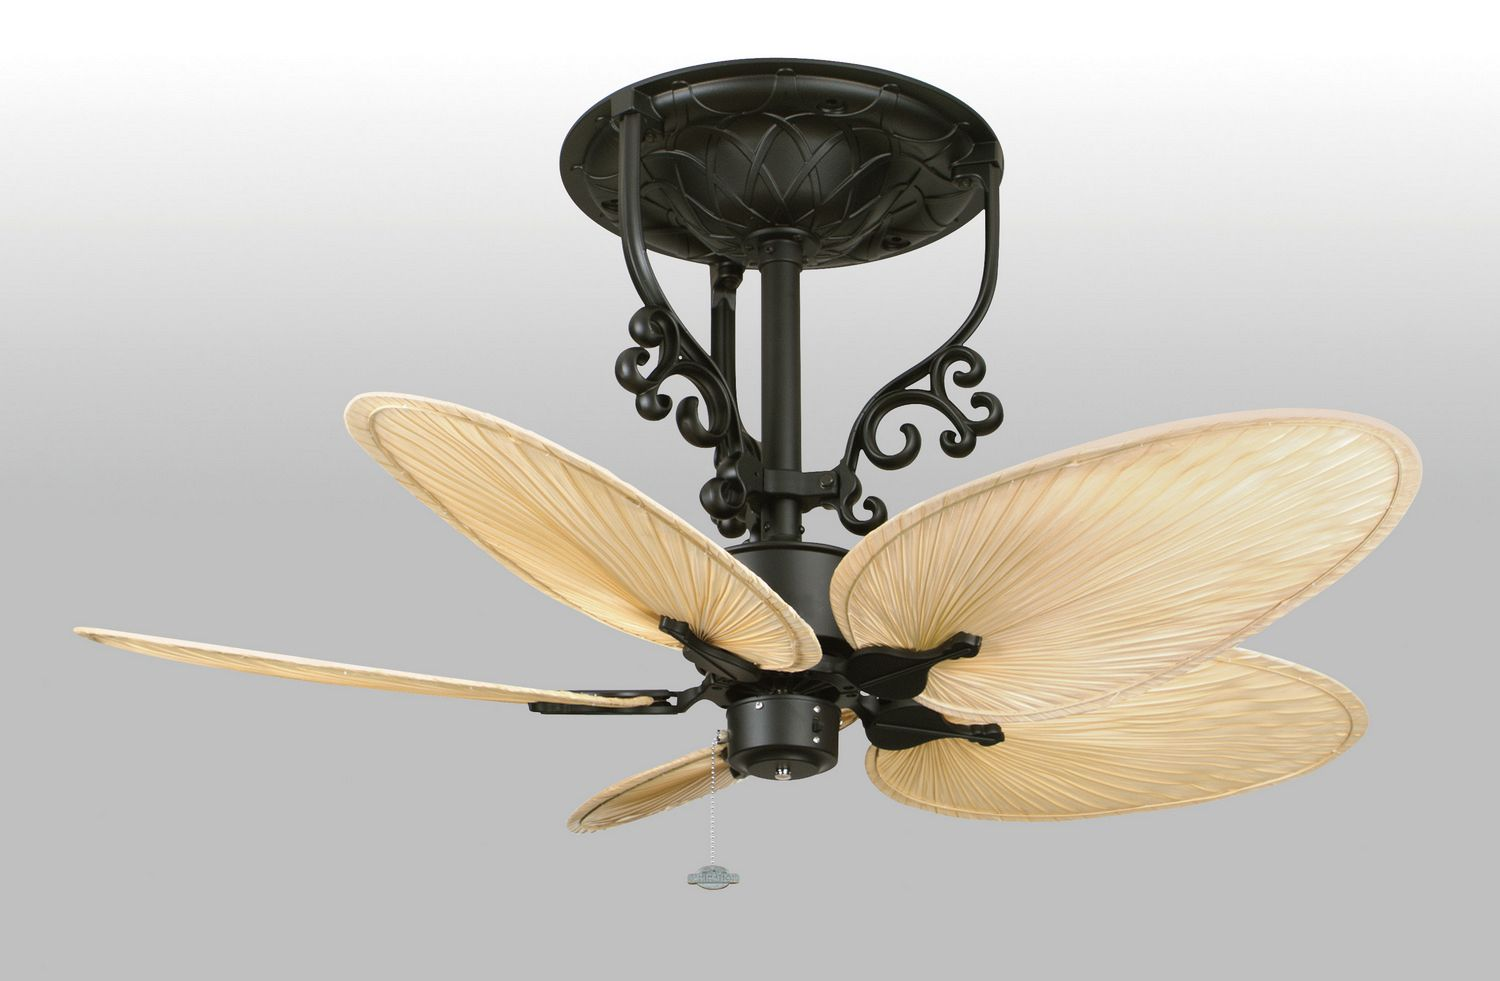 C Fan Imagine An Old Saloon At The Turn Of The Century Now Imagine Its Ceiling If Your Mind S Eye Pictur Ceiling Fan Design Ceiling Fan Vintage Ceiling Fans